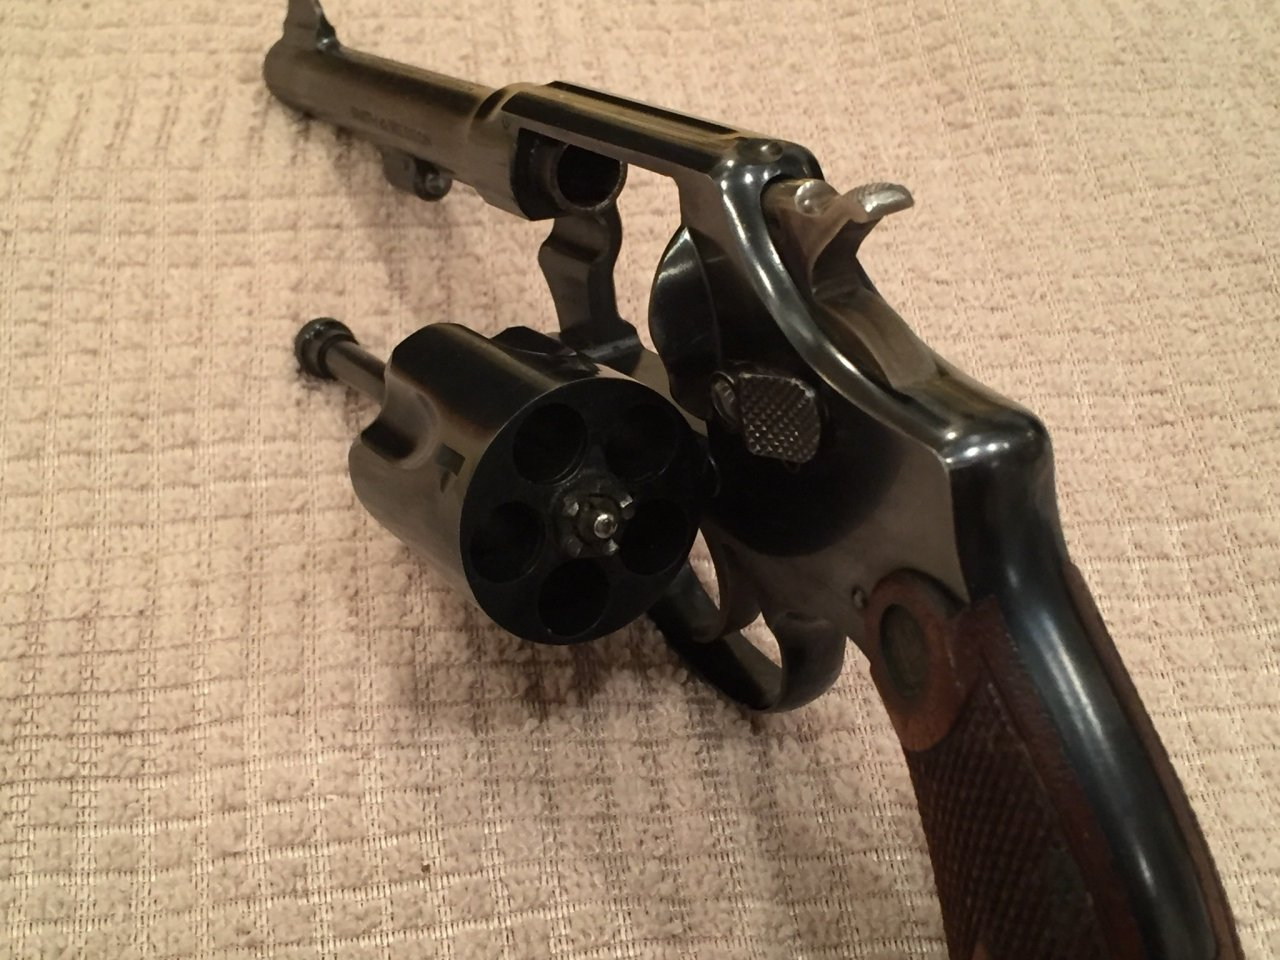 I Am Trying To Determine The Age And Value Of My Smith And Wesson 38